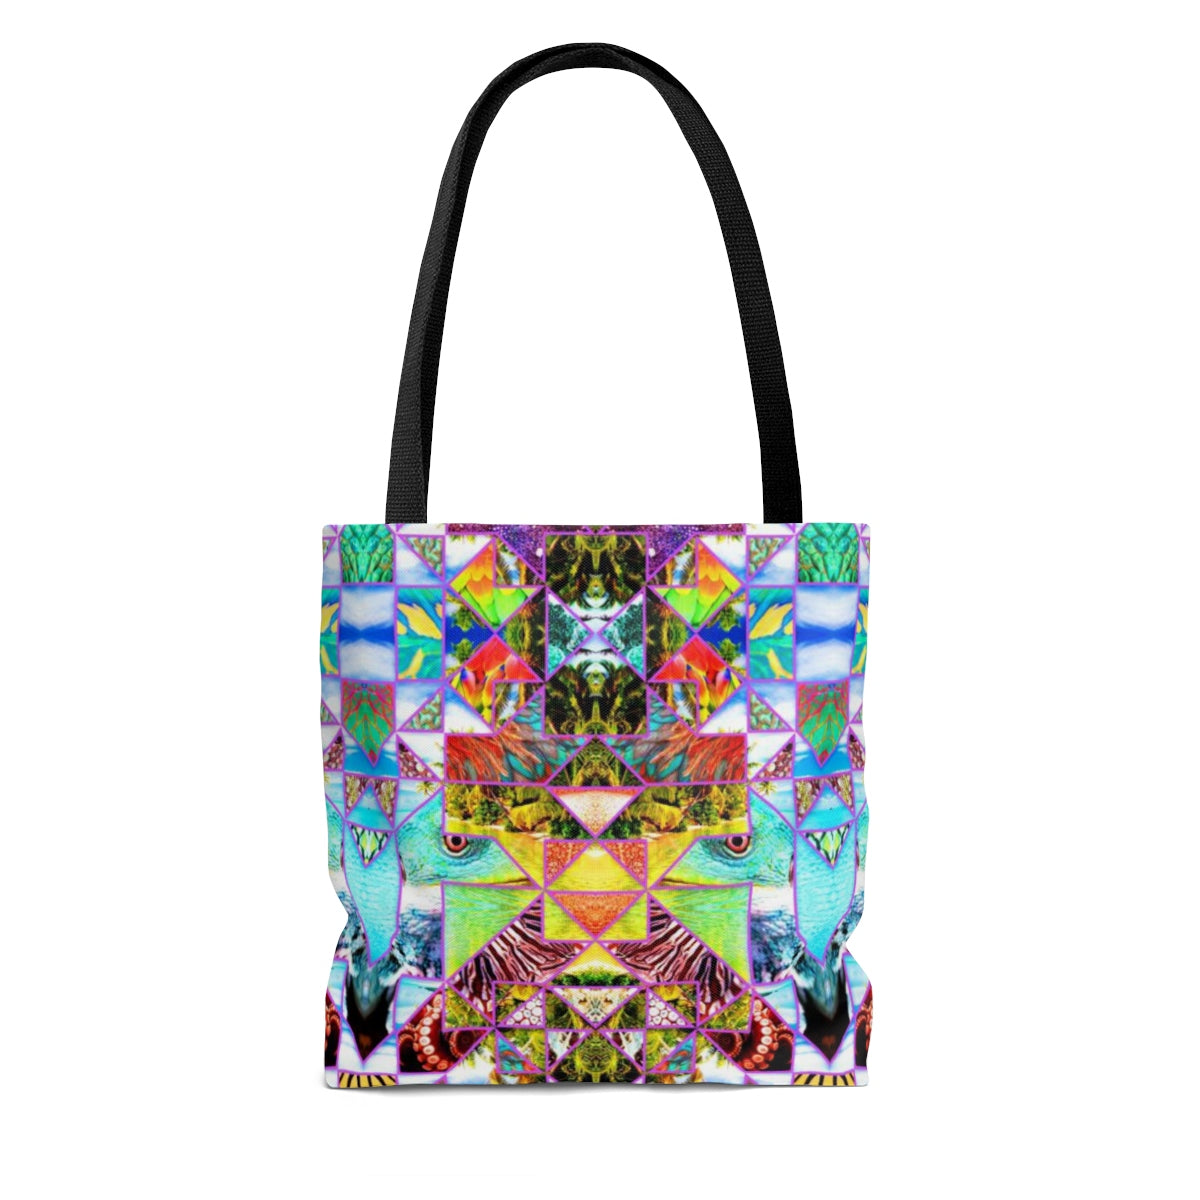 Fiji Islands #0011 (Tote Bag)